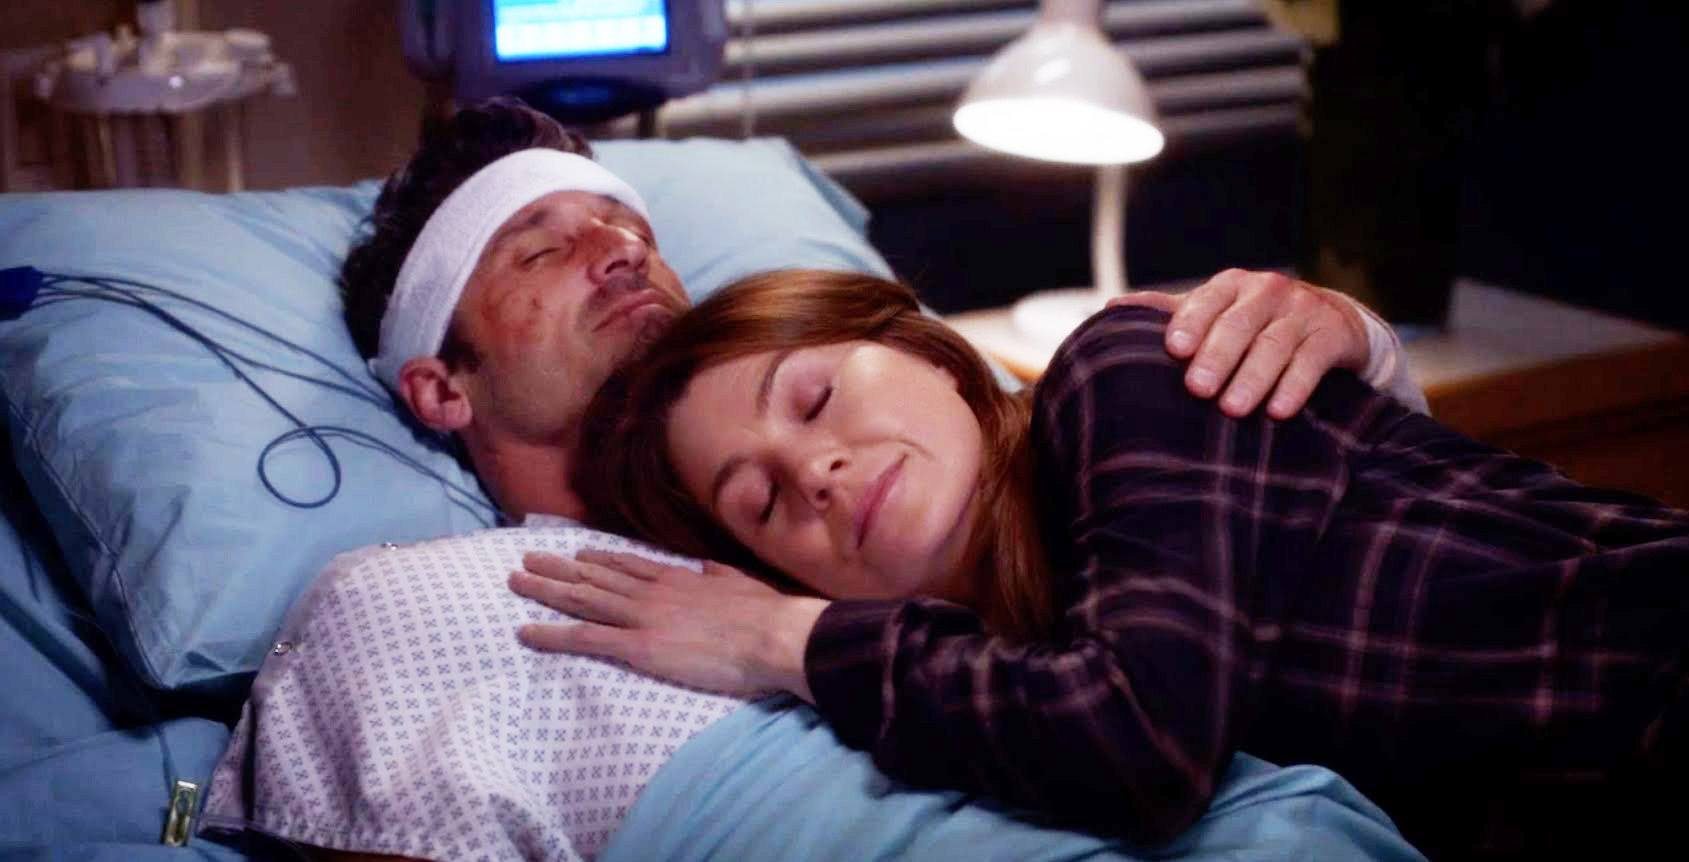 Derek holding Meredith on his death bed in Grey's Anatomy